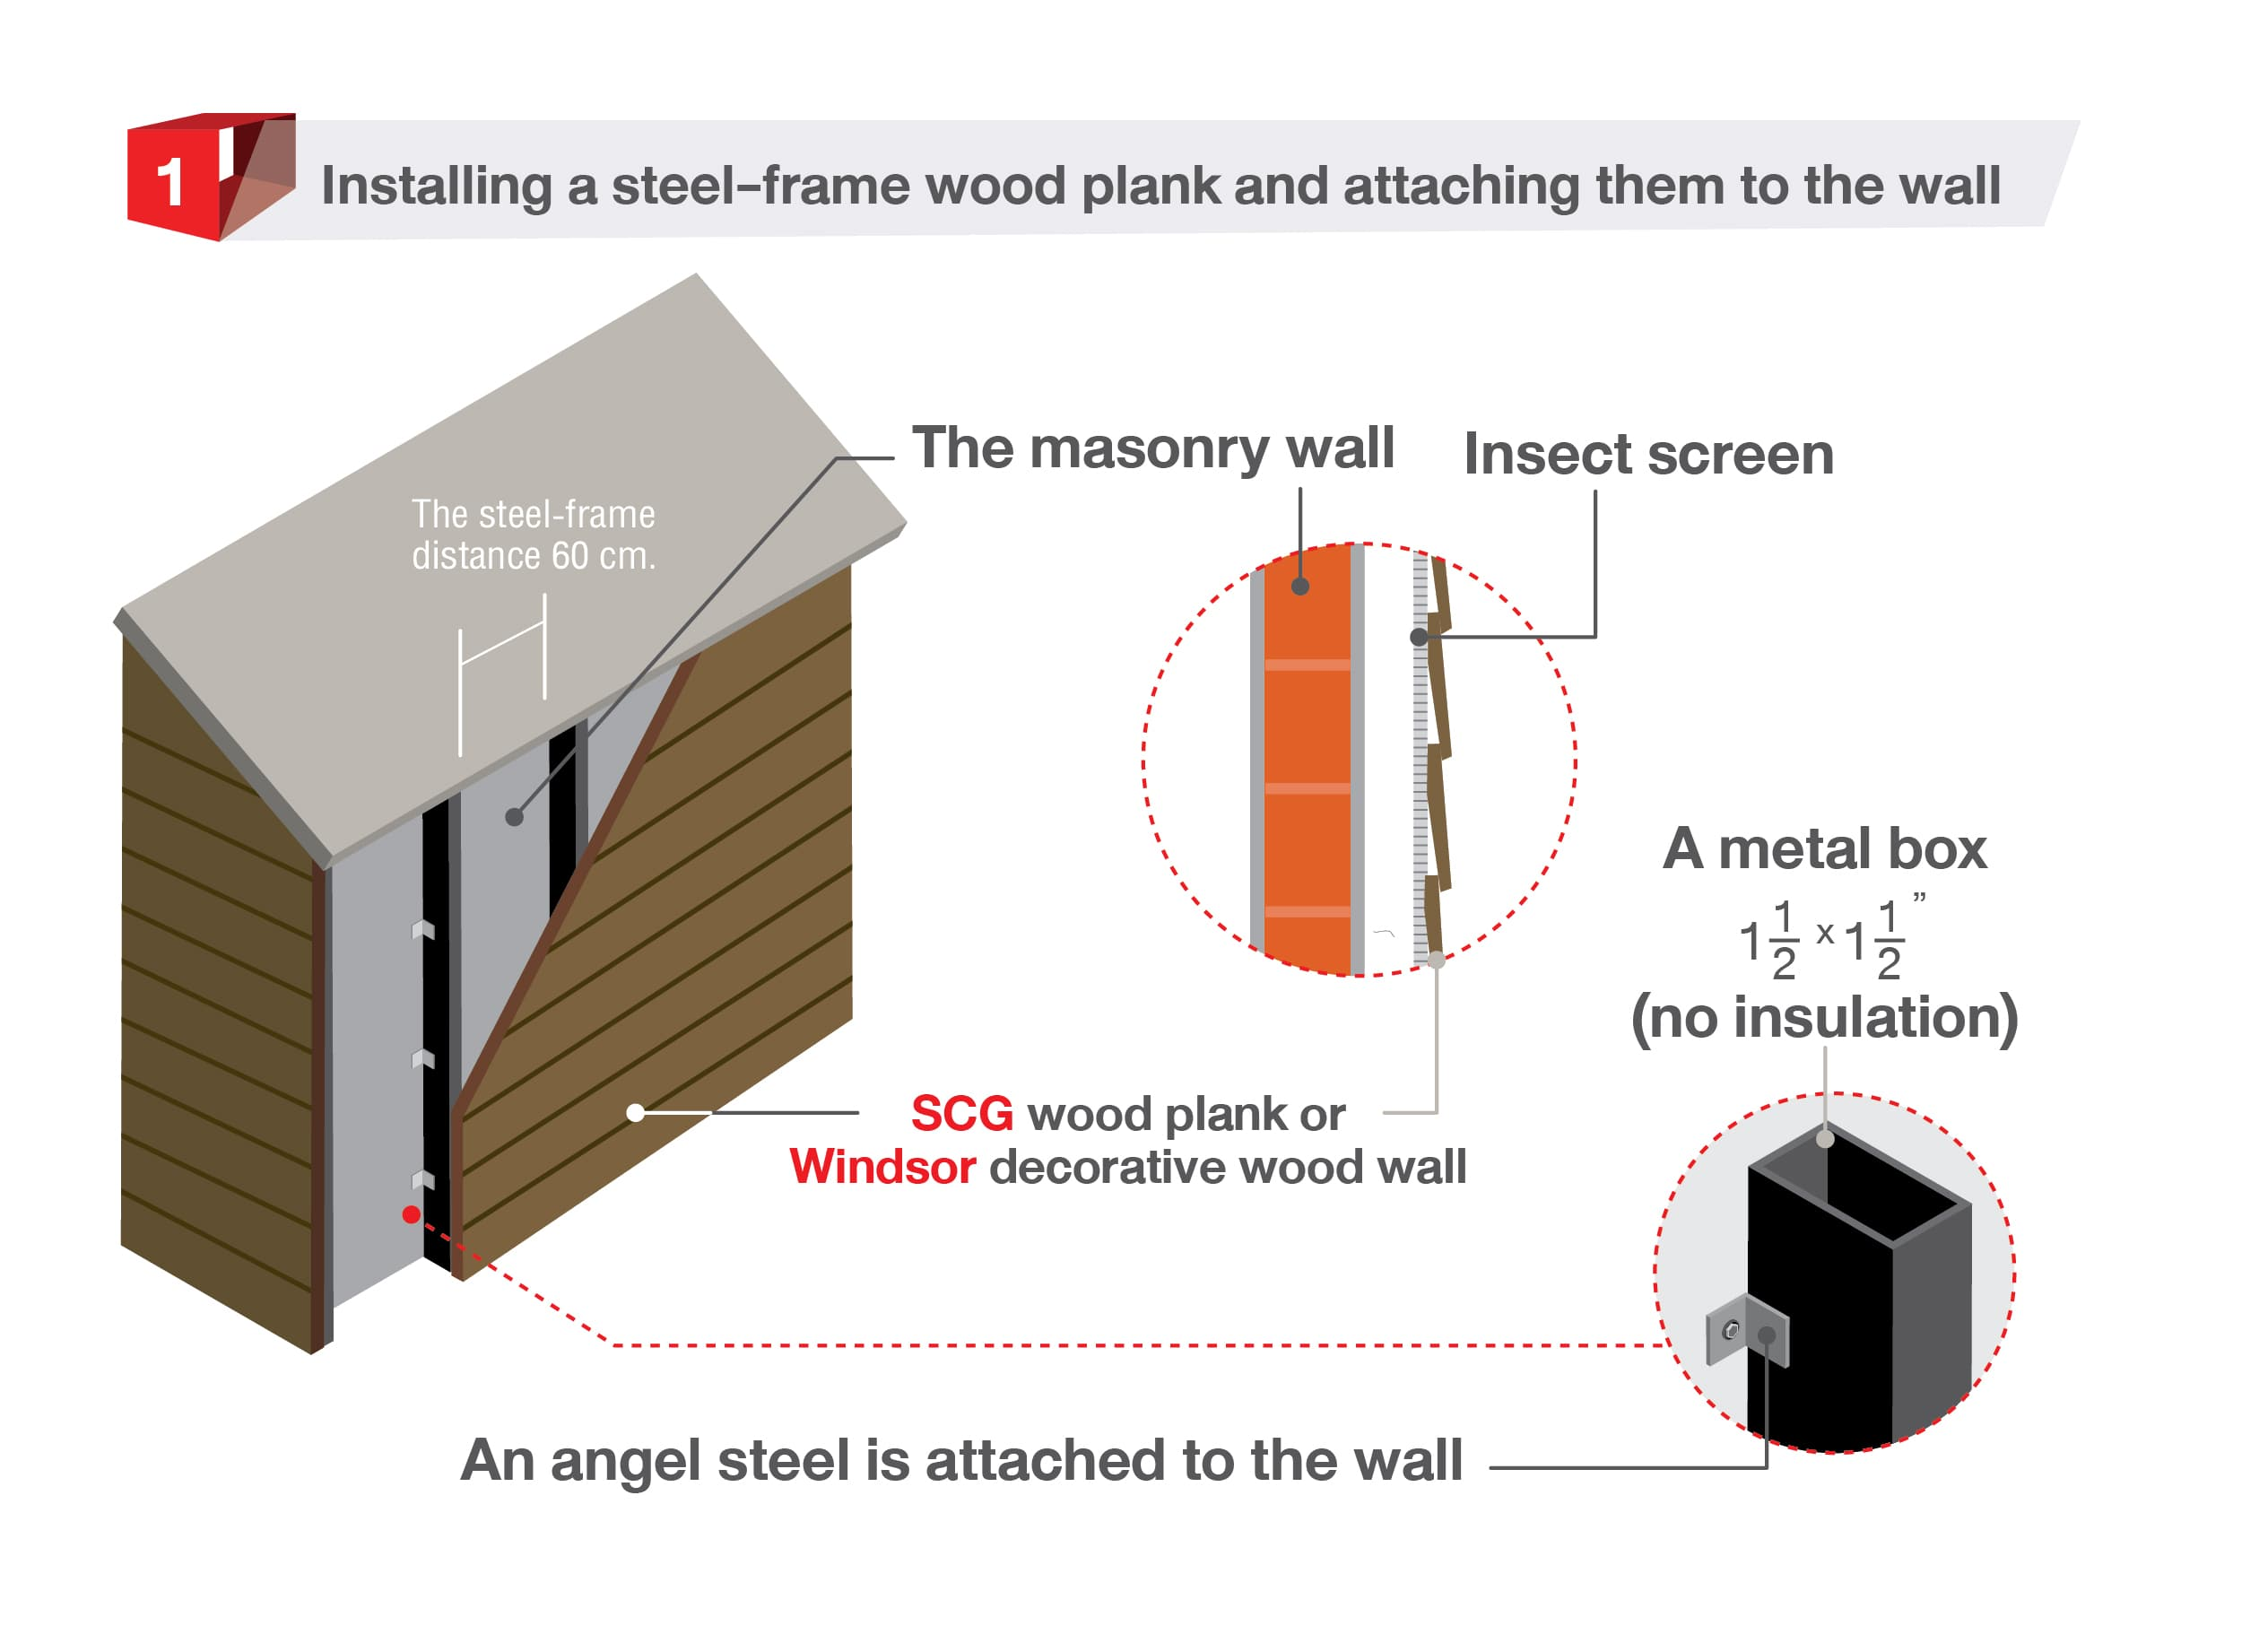 How to install wall insulation with wood plank